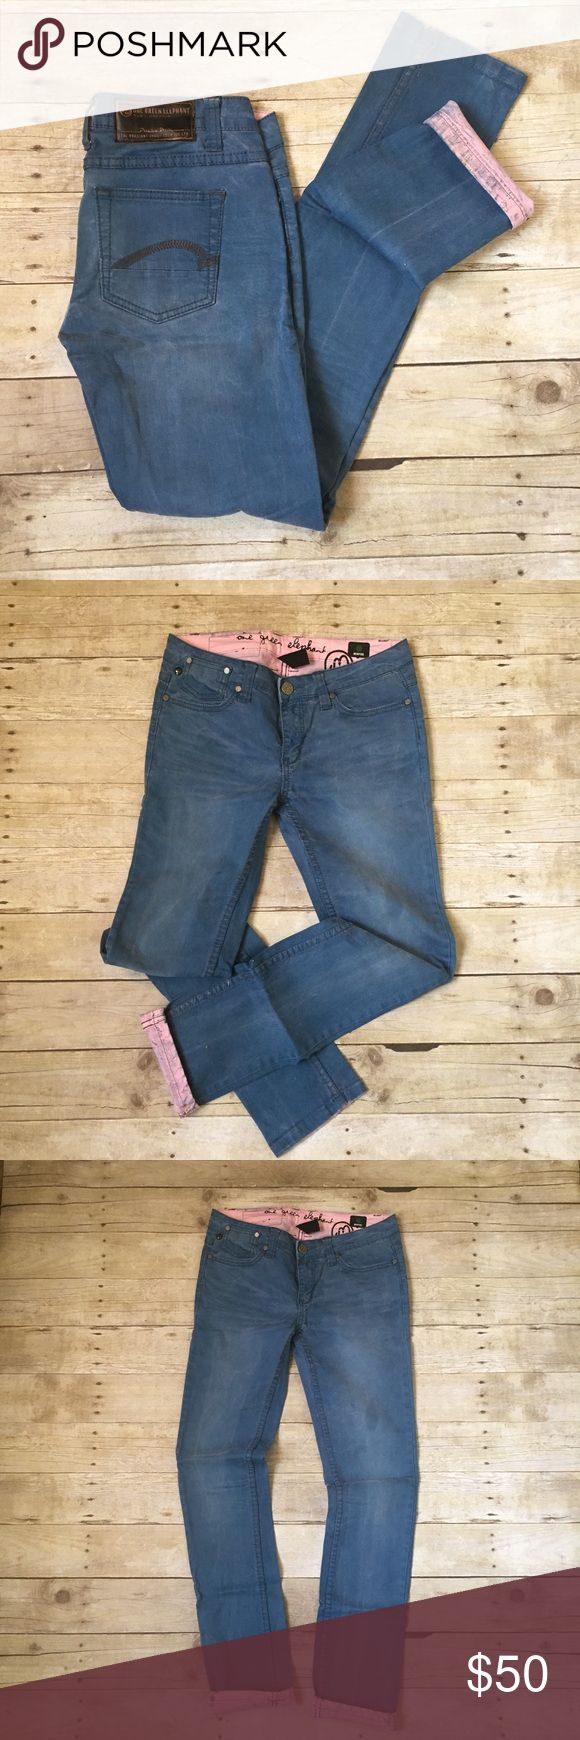 """One Green Elephant   Blue Pink Rock Chic Jeans EUC. Worn once. Premium denim, very sturdy Jean and skinny leg fit. Not actual jeans in photo, but picture is an idea of fit. Instead is pink. Exterior has a blue with pinkish tint. Tag style is """"Memphis. US size 8/UK size 14. I think these run small as I normally wear a 6. Please check dimensions before purchase. Waist laying flat is 16.5"""". Inseam is 33"""". Rise is 7.5"""". Middle of the thigh is 8.75"""". 98% cotton, 2% elastane. These have just a…"""